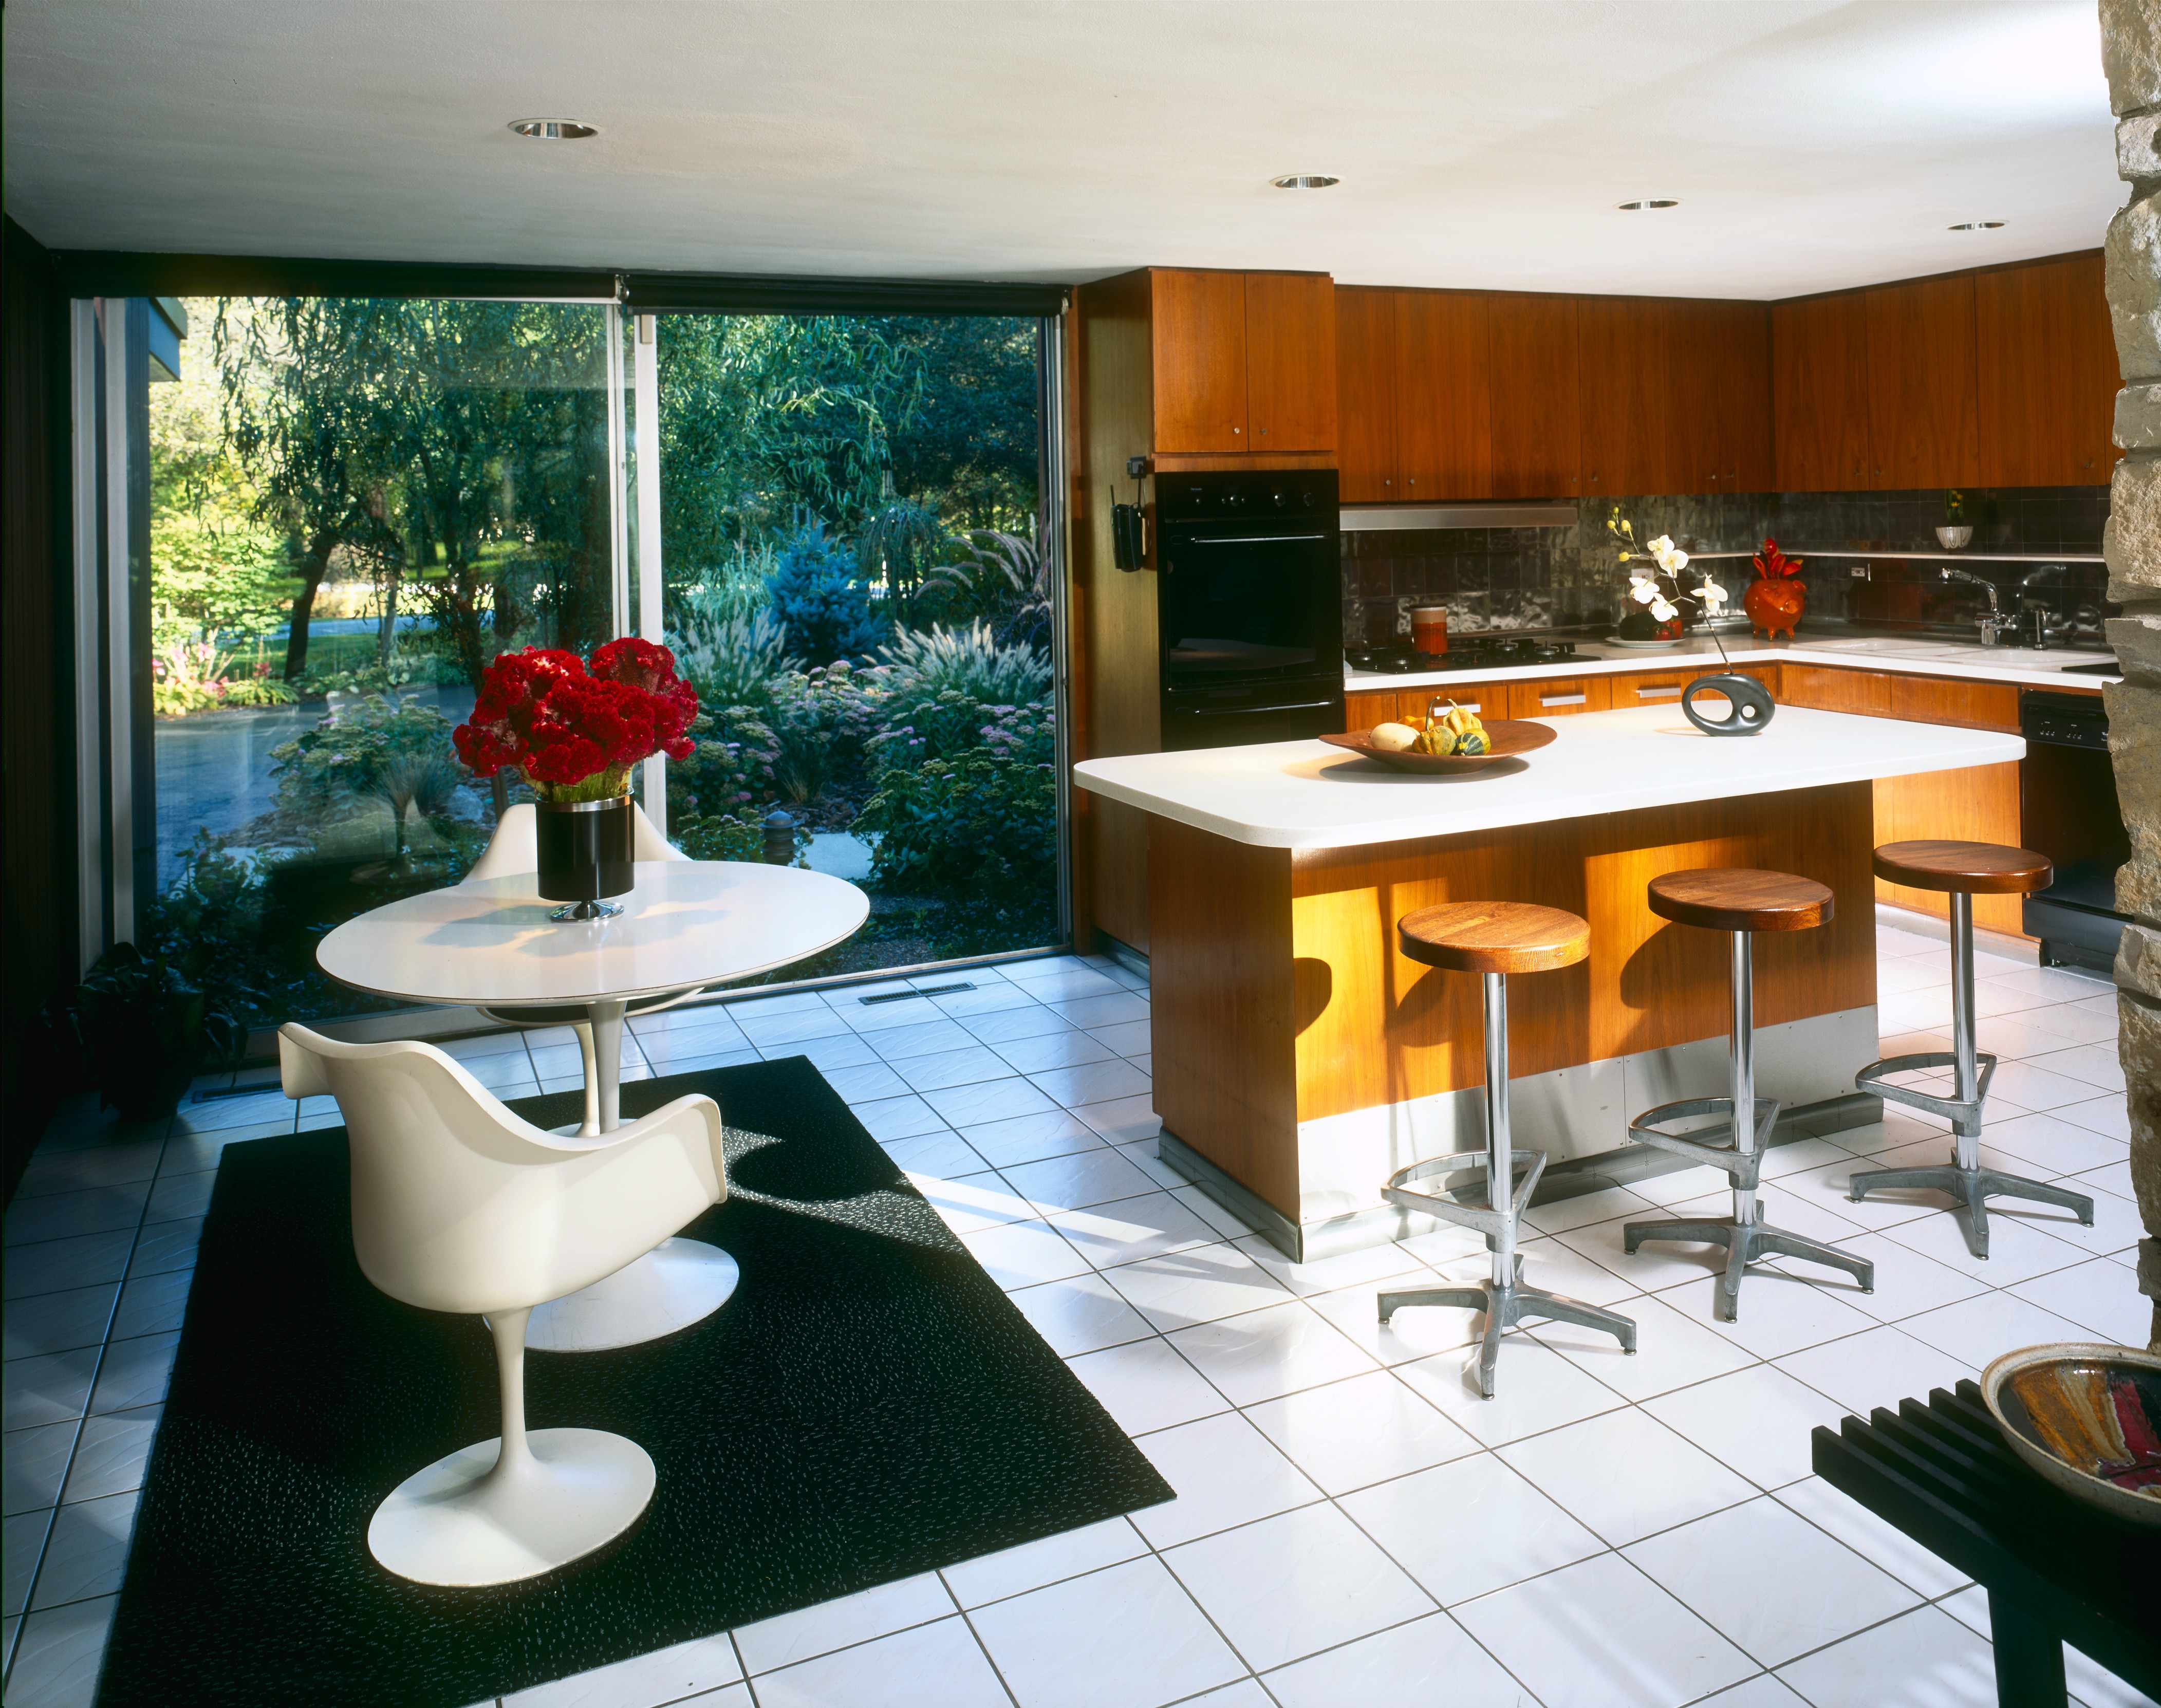 Choose No Hardware Or Simple Mid Century Style Round Knobs For New Cabinets.  Study Photos Online Of Kitchens In The Era Of Your House To Get Ideas.